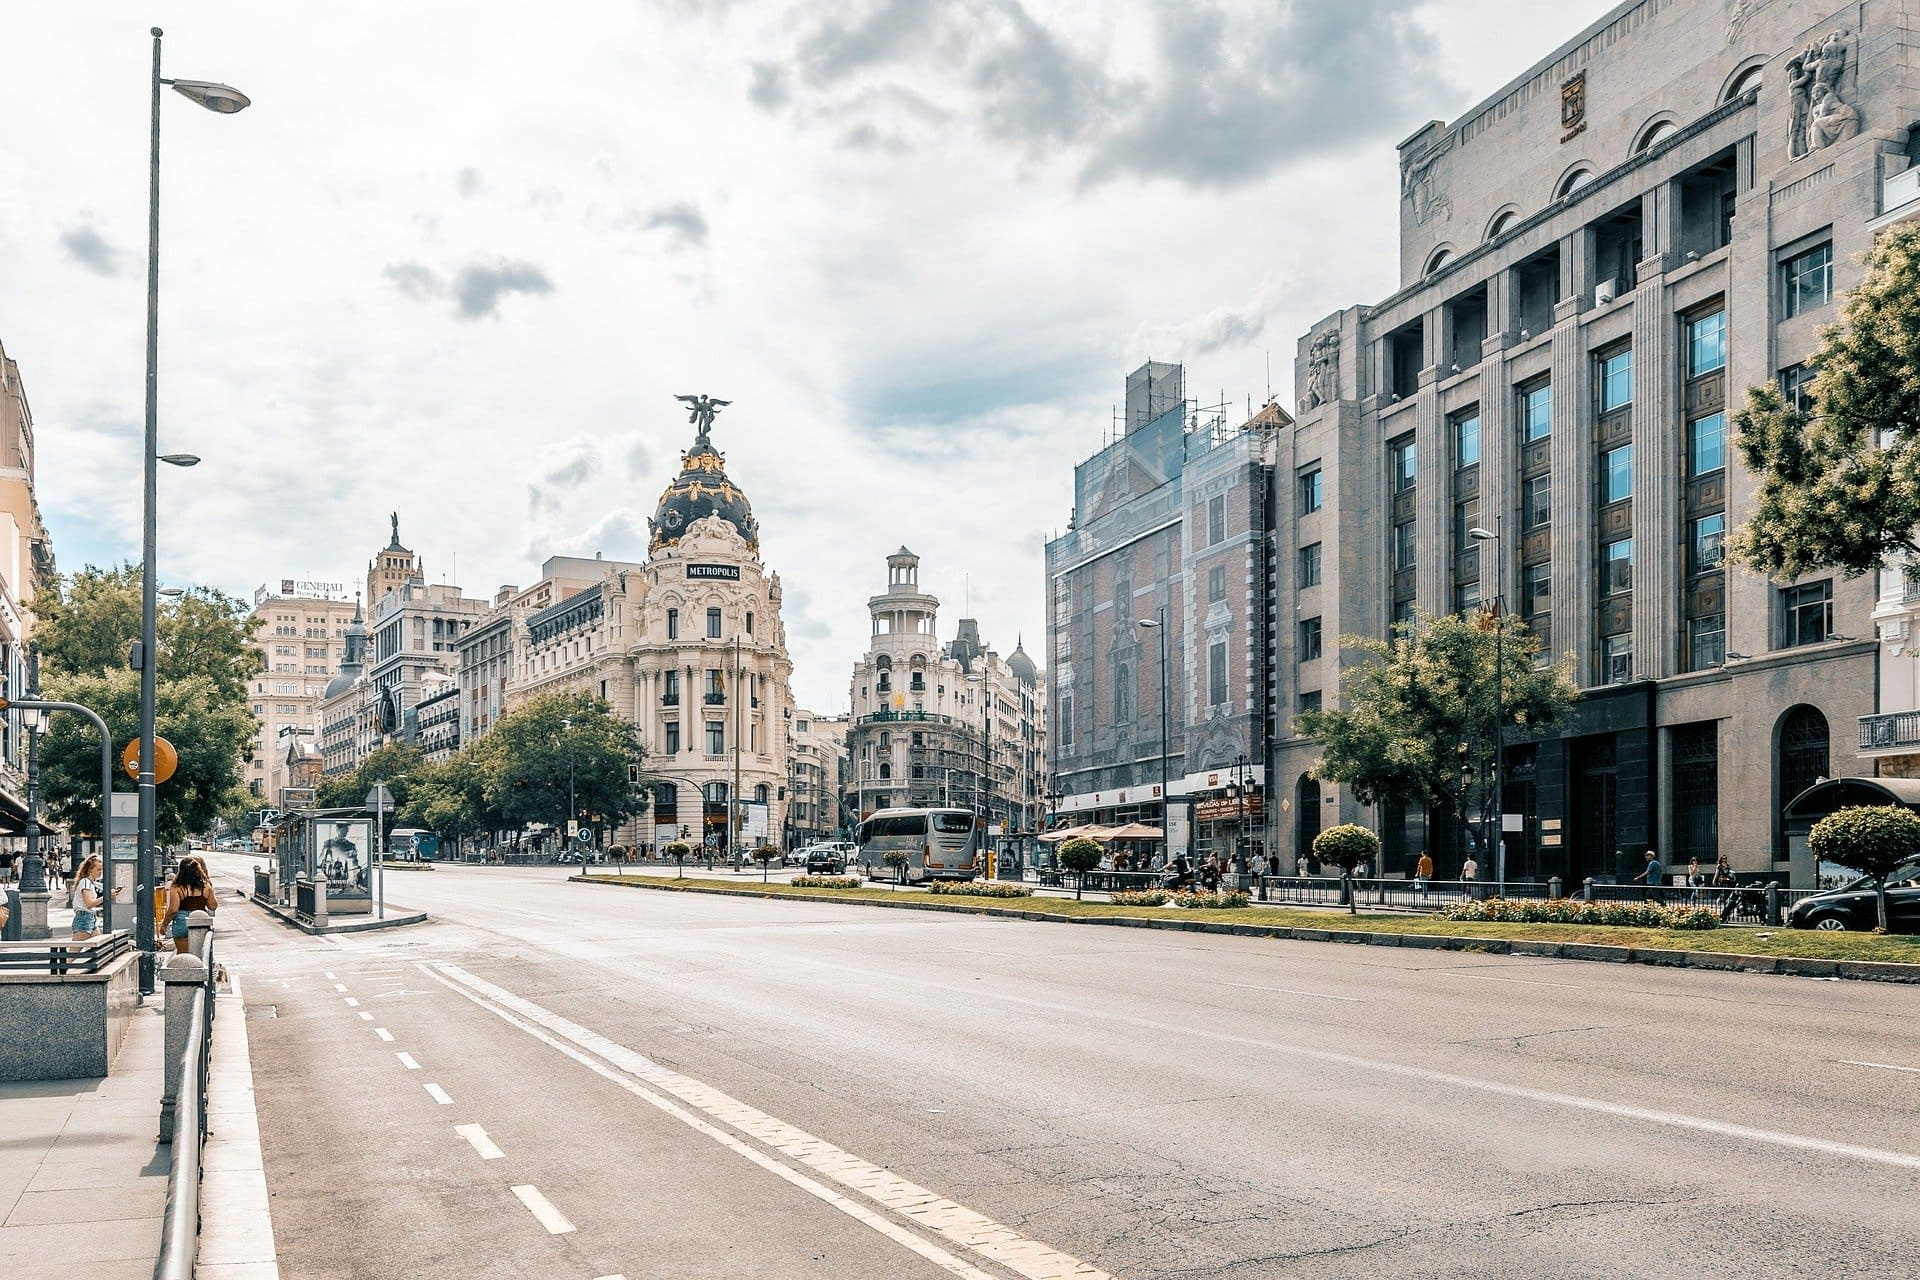 visit the beautiful city of madrid